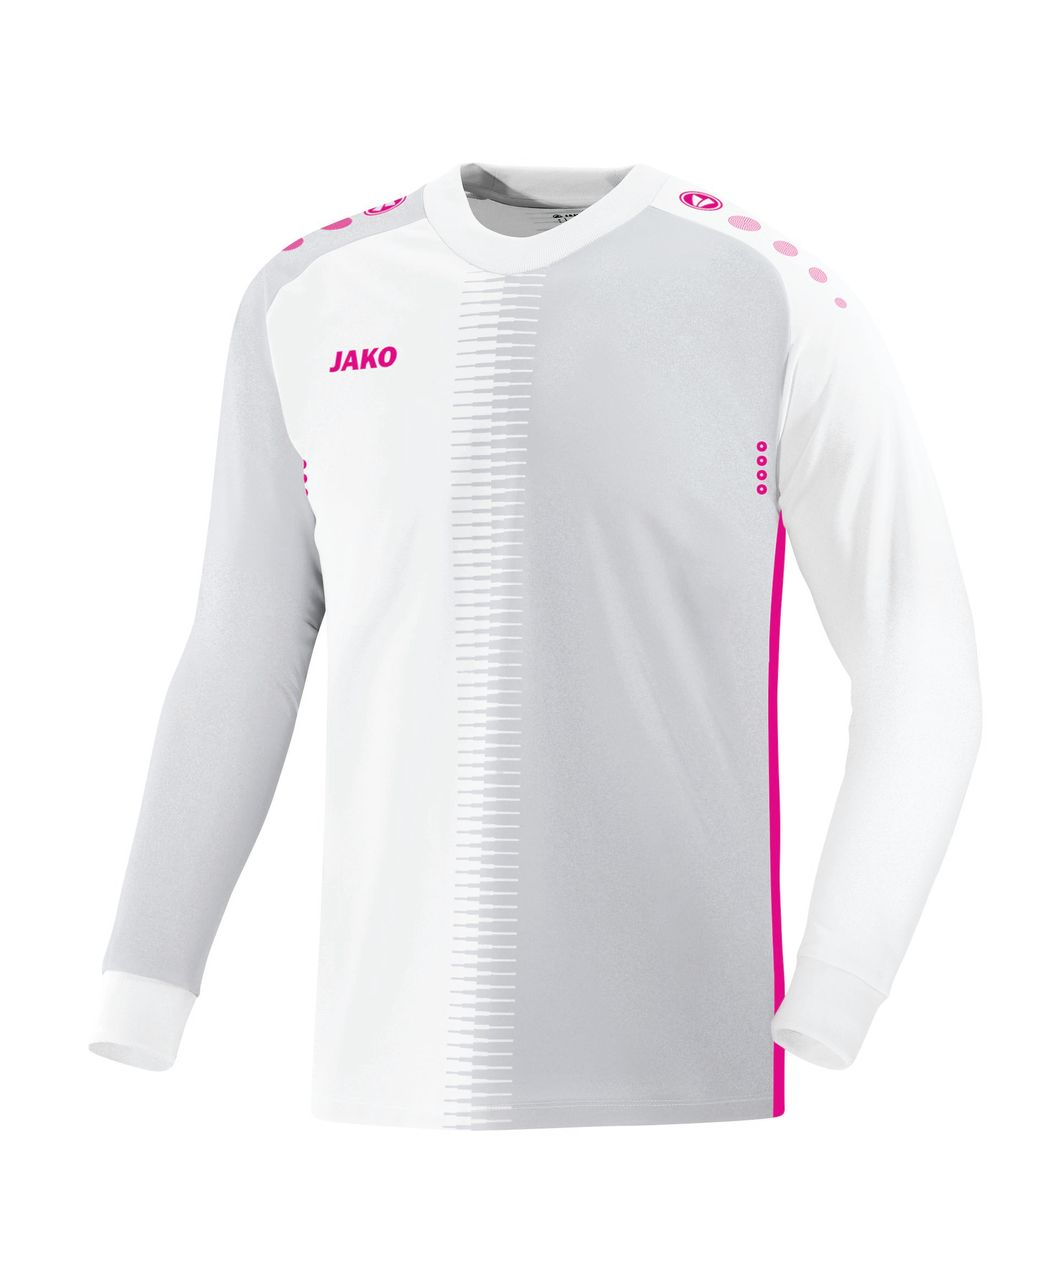 JAKO TW-Trikot Competition 2.0